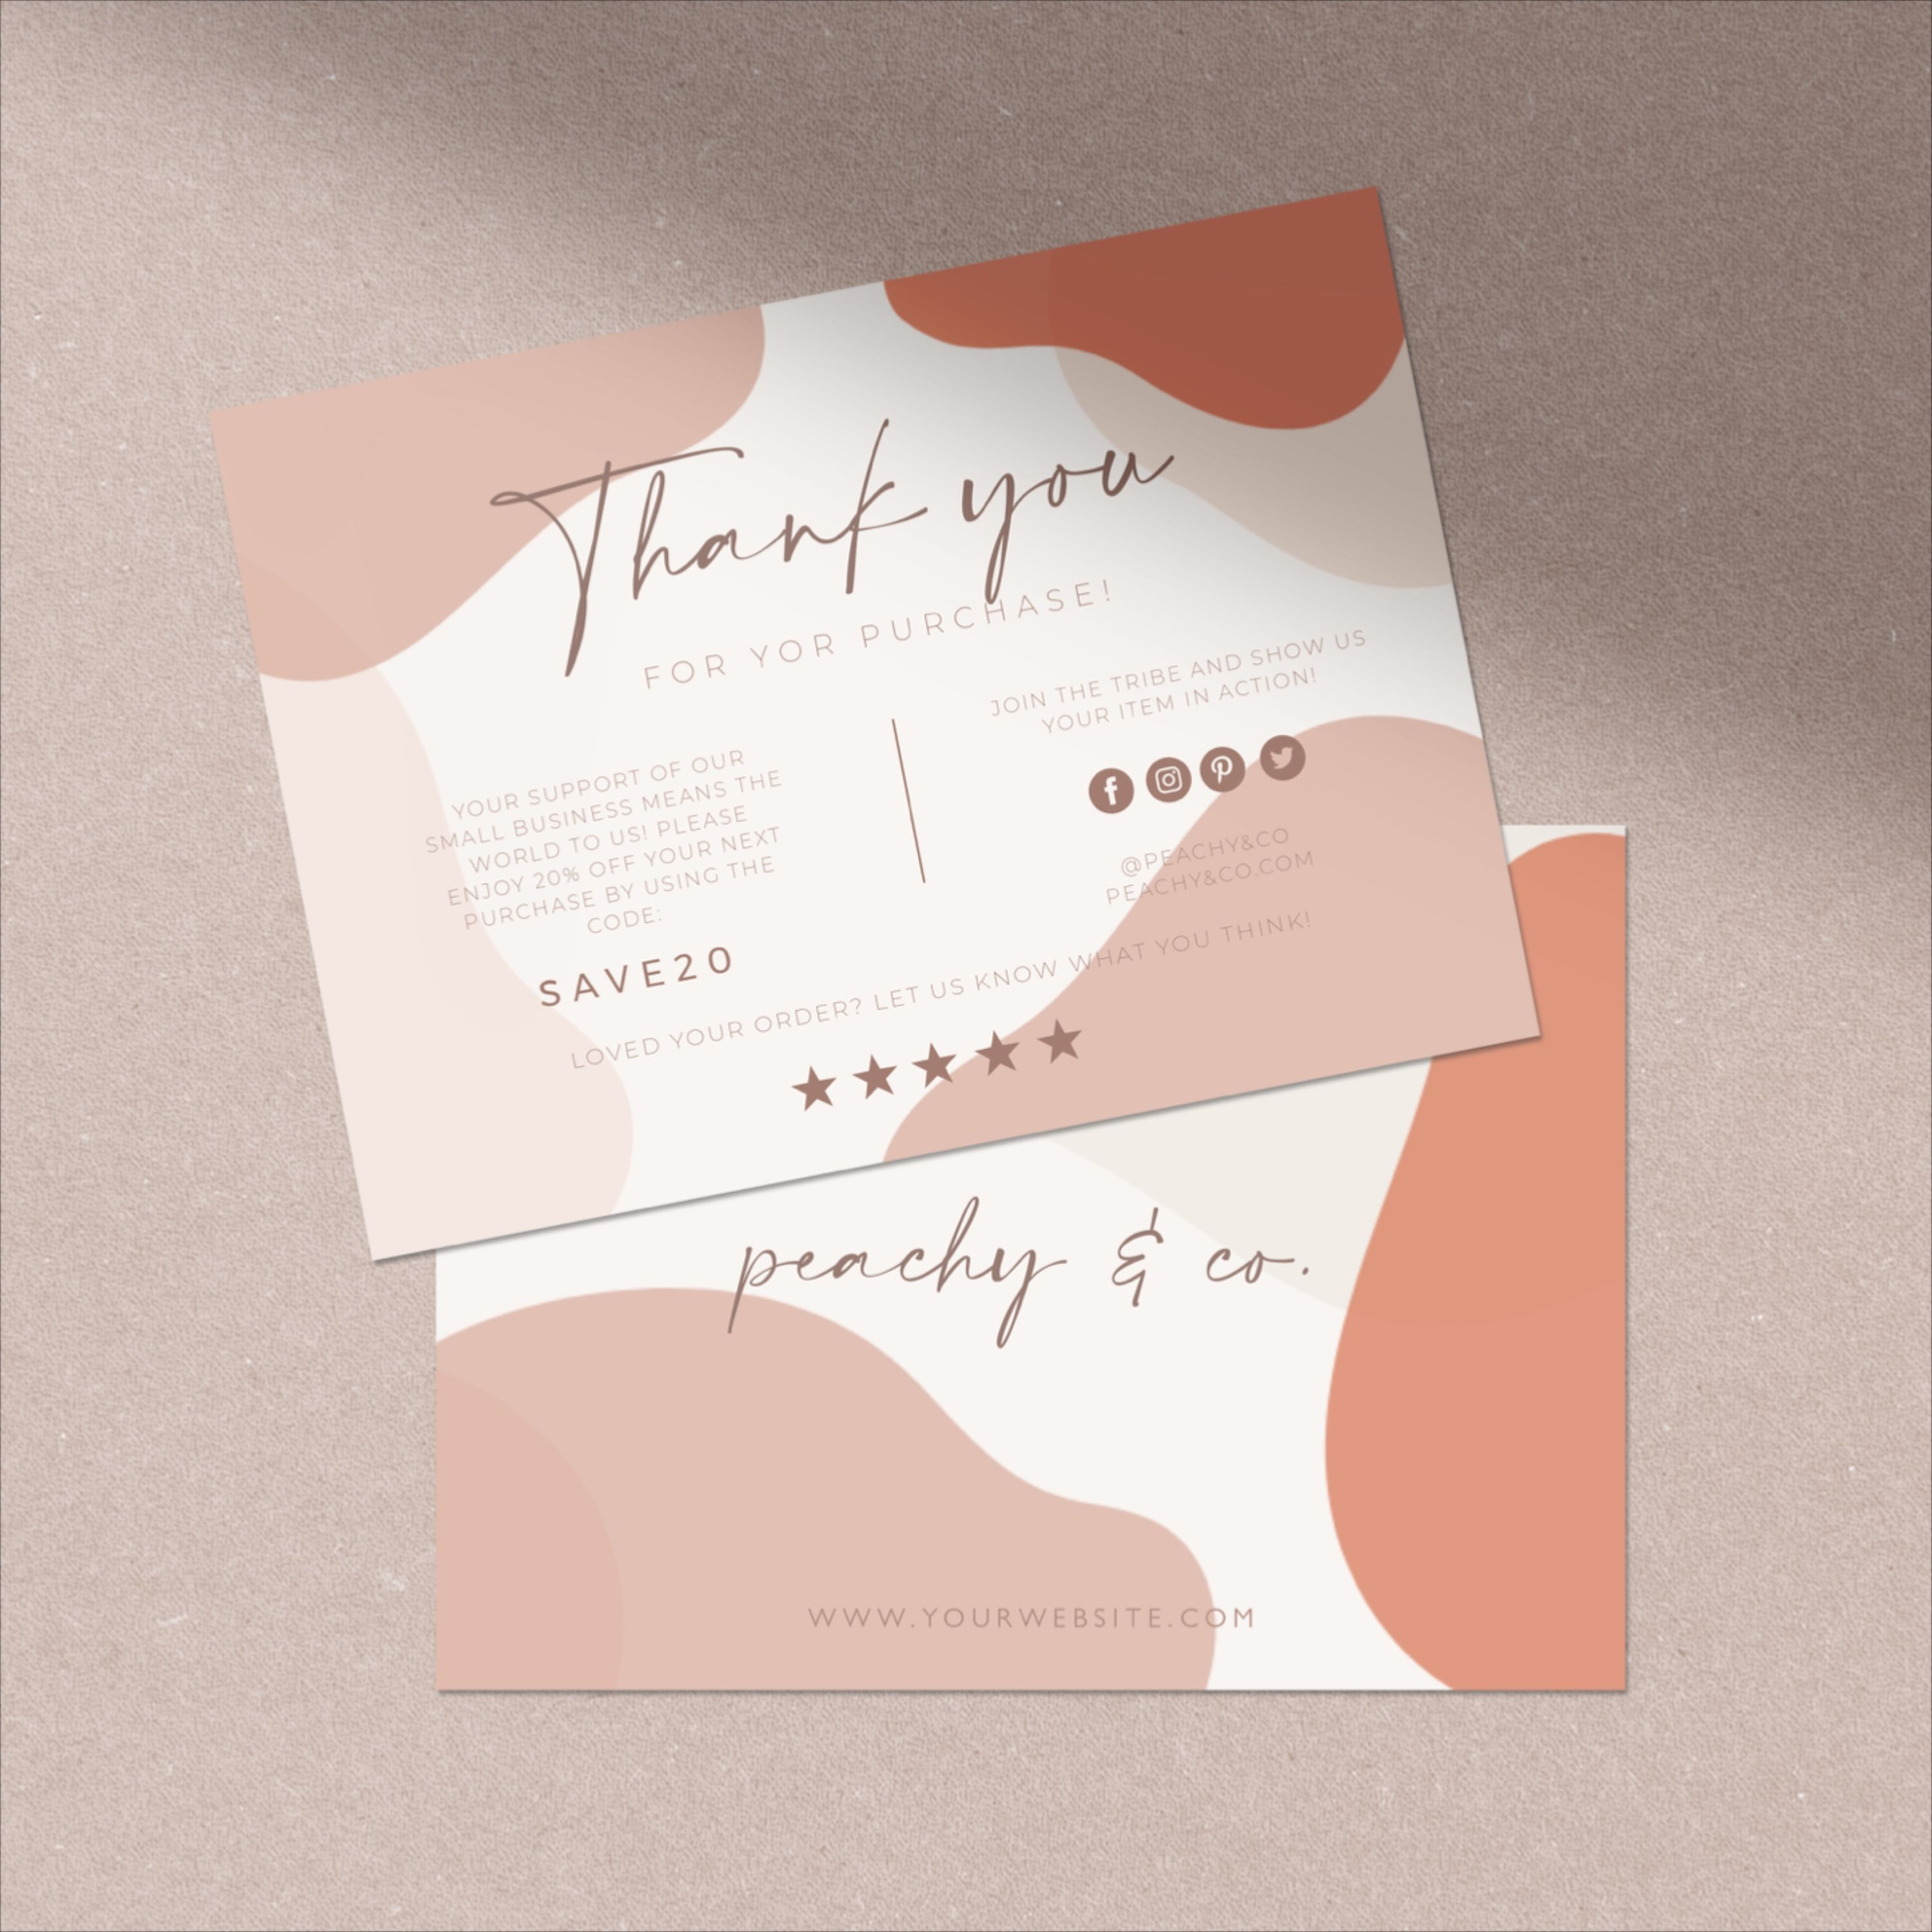 Abstract Modern Brown Blush Thank You Card Small Business Thank You Package Insert Thank You For Your Purchase Thank You Card Design Graphic Design Business Card Business Thank You Cards